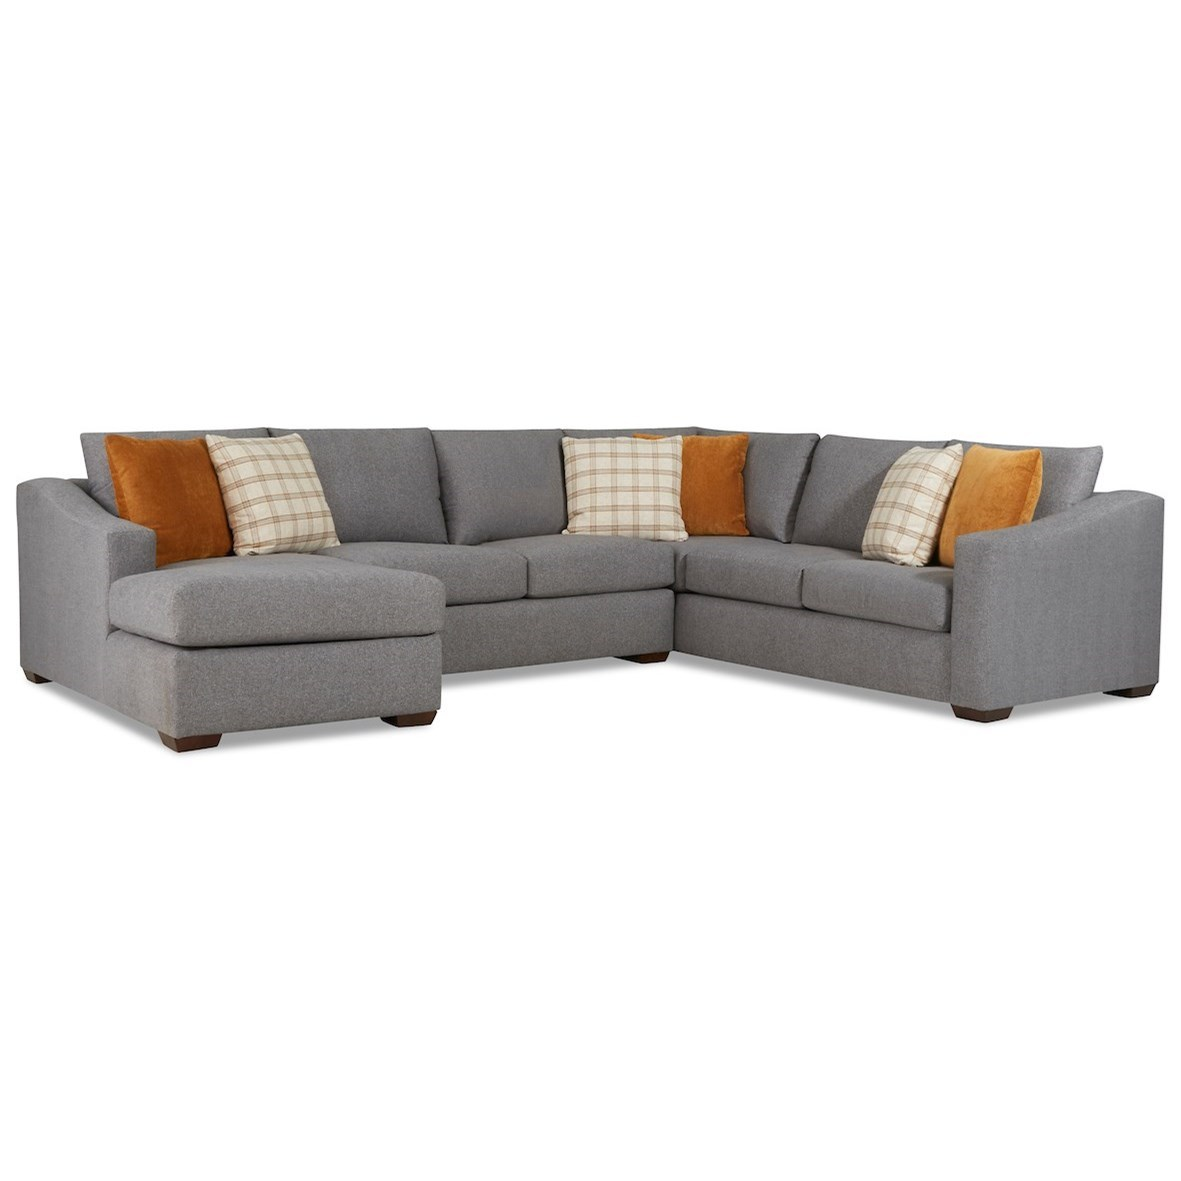 Demi 5-Seat Sectional Sofa w/ LAF Chaise by Klaussner at Johnny Janosik